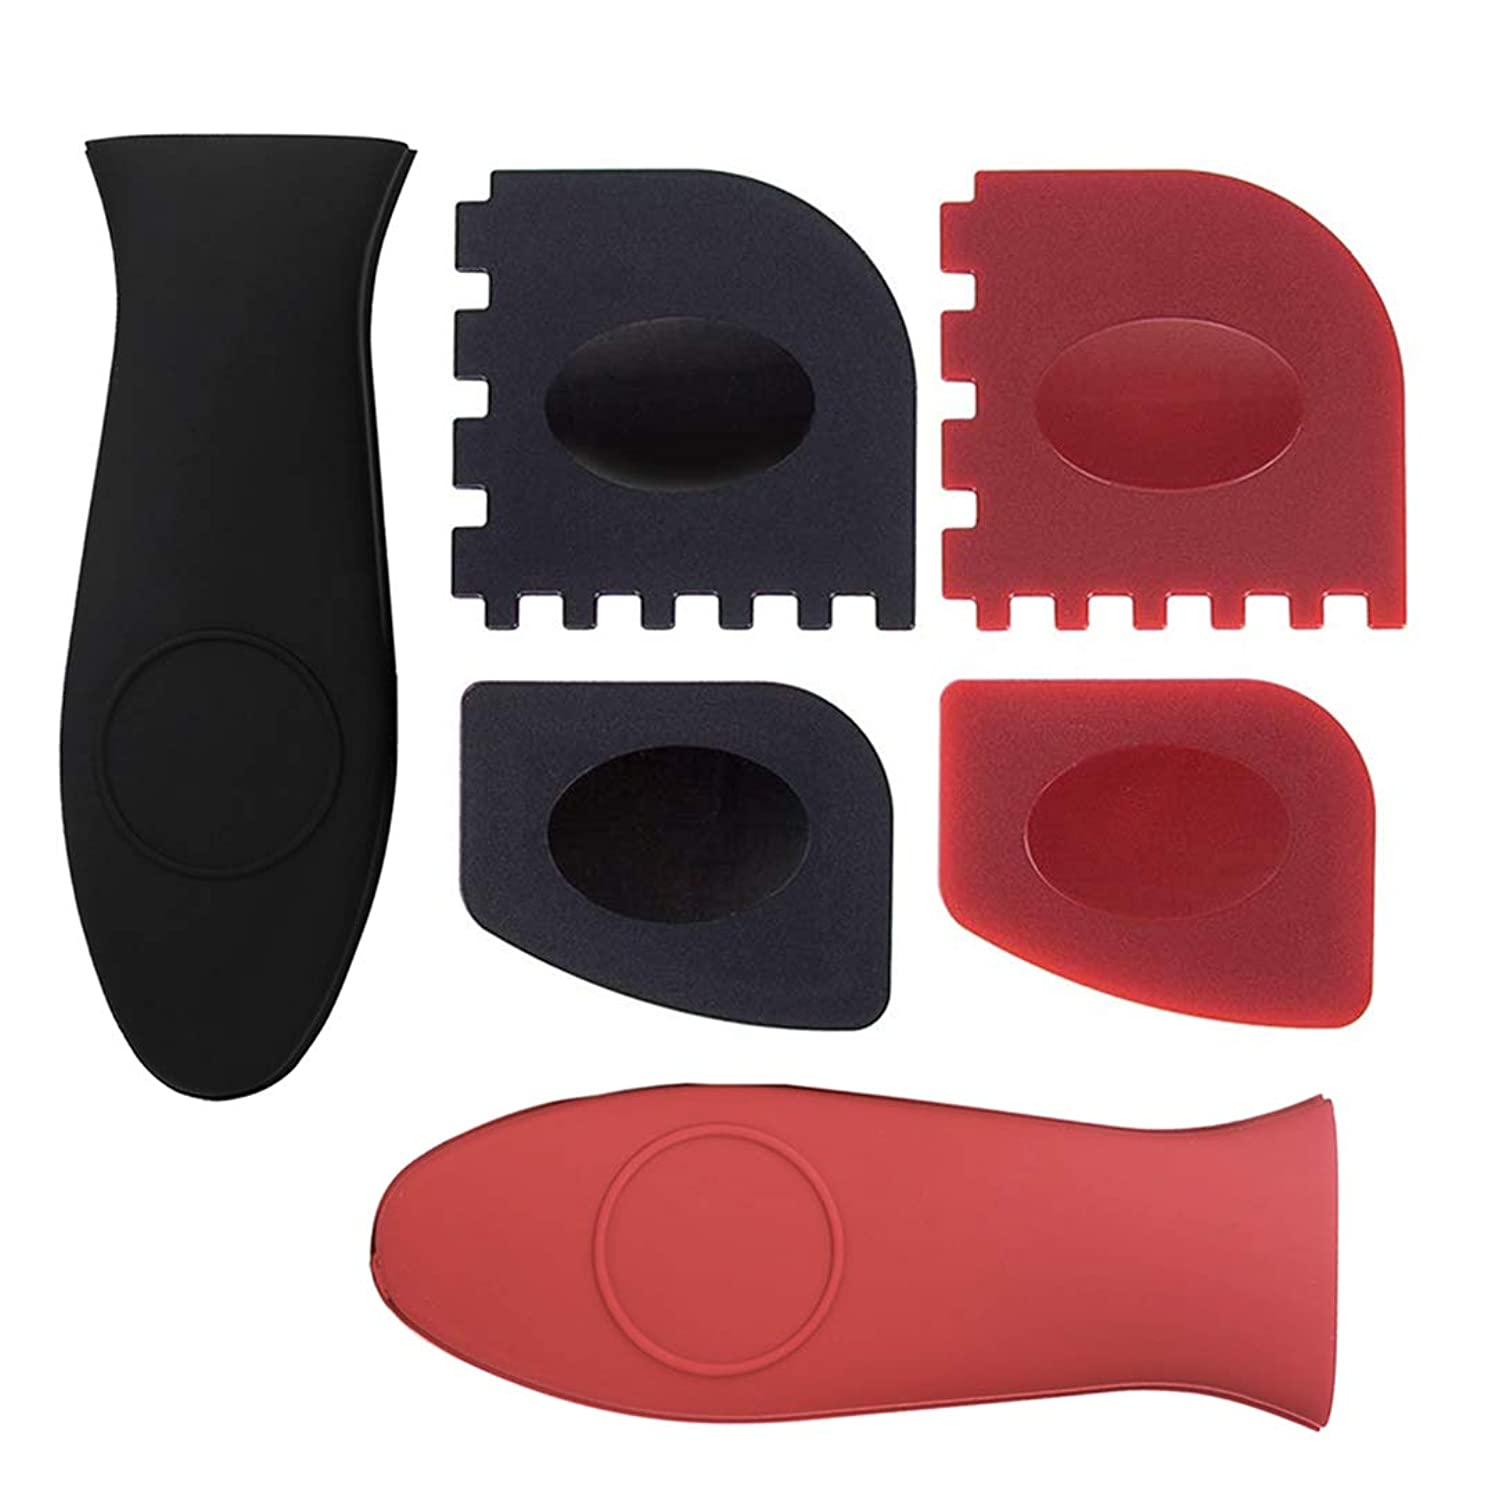 Juland 6PCS Durable Grill Pan Scrapers with Silicone Hot Handle Holder Silicone Plastic Set Tool for Cast Iron Skillets, Griddles Frying Pans - Black & Red